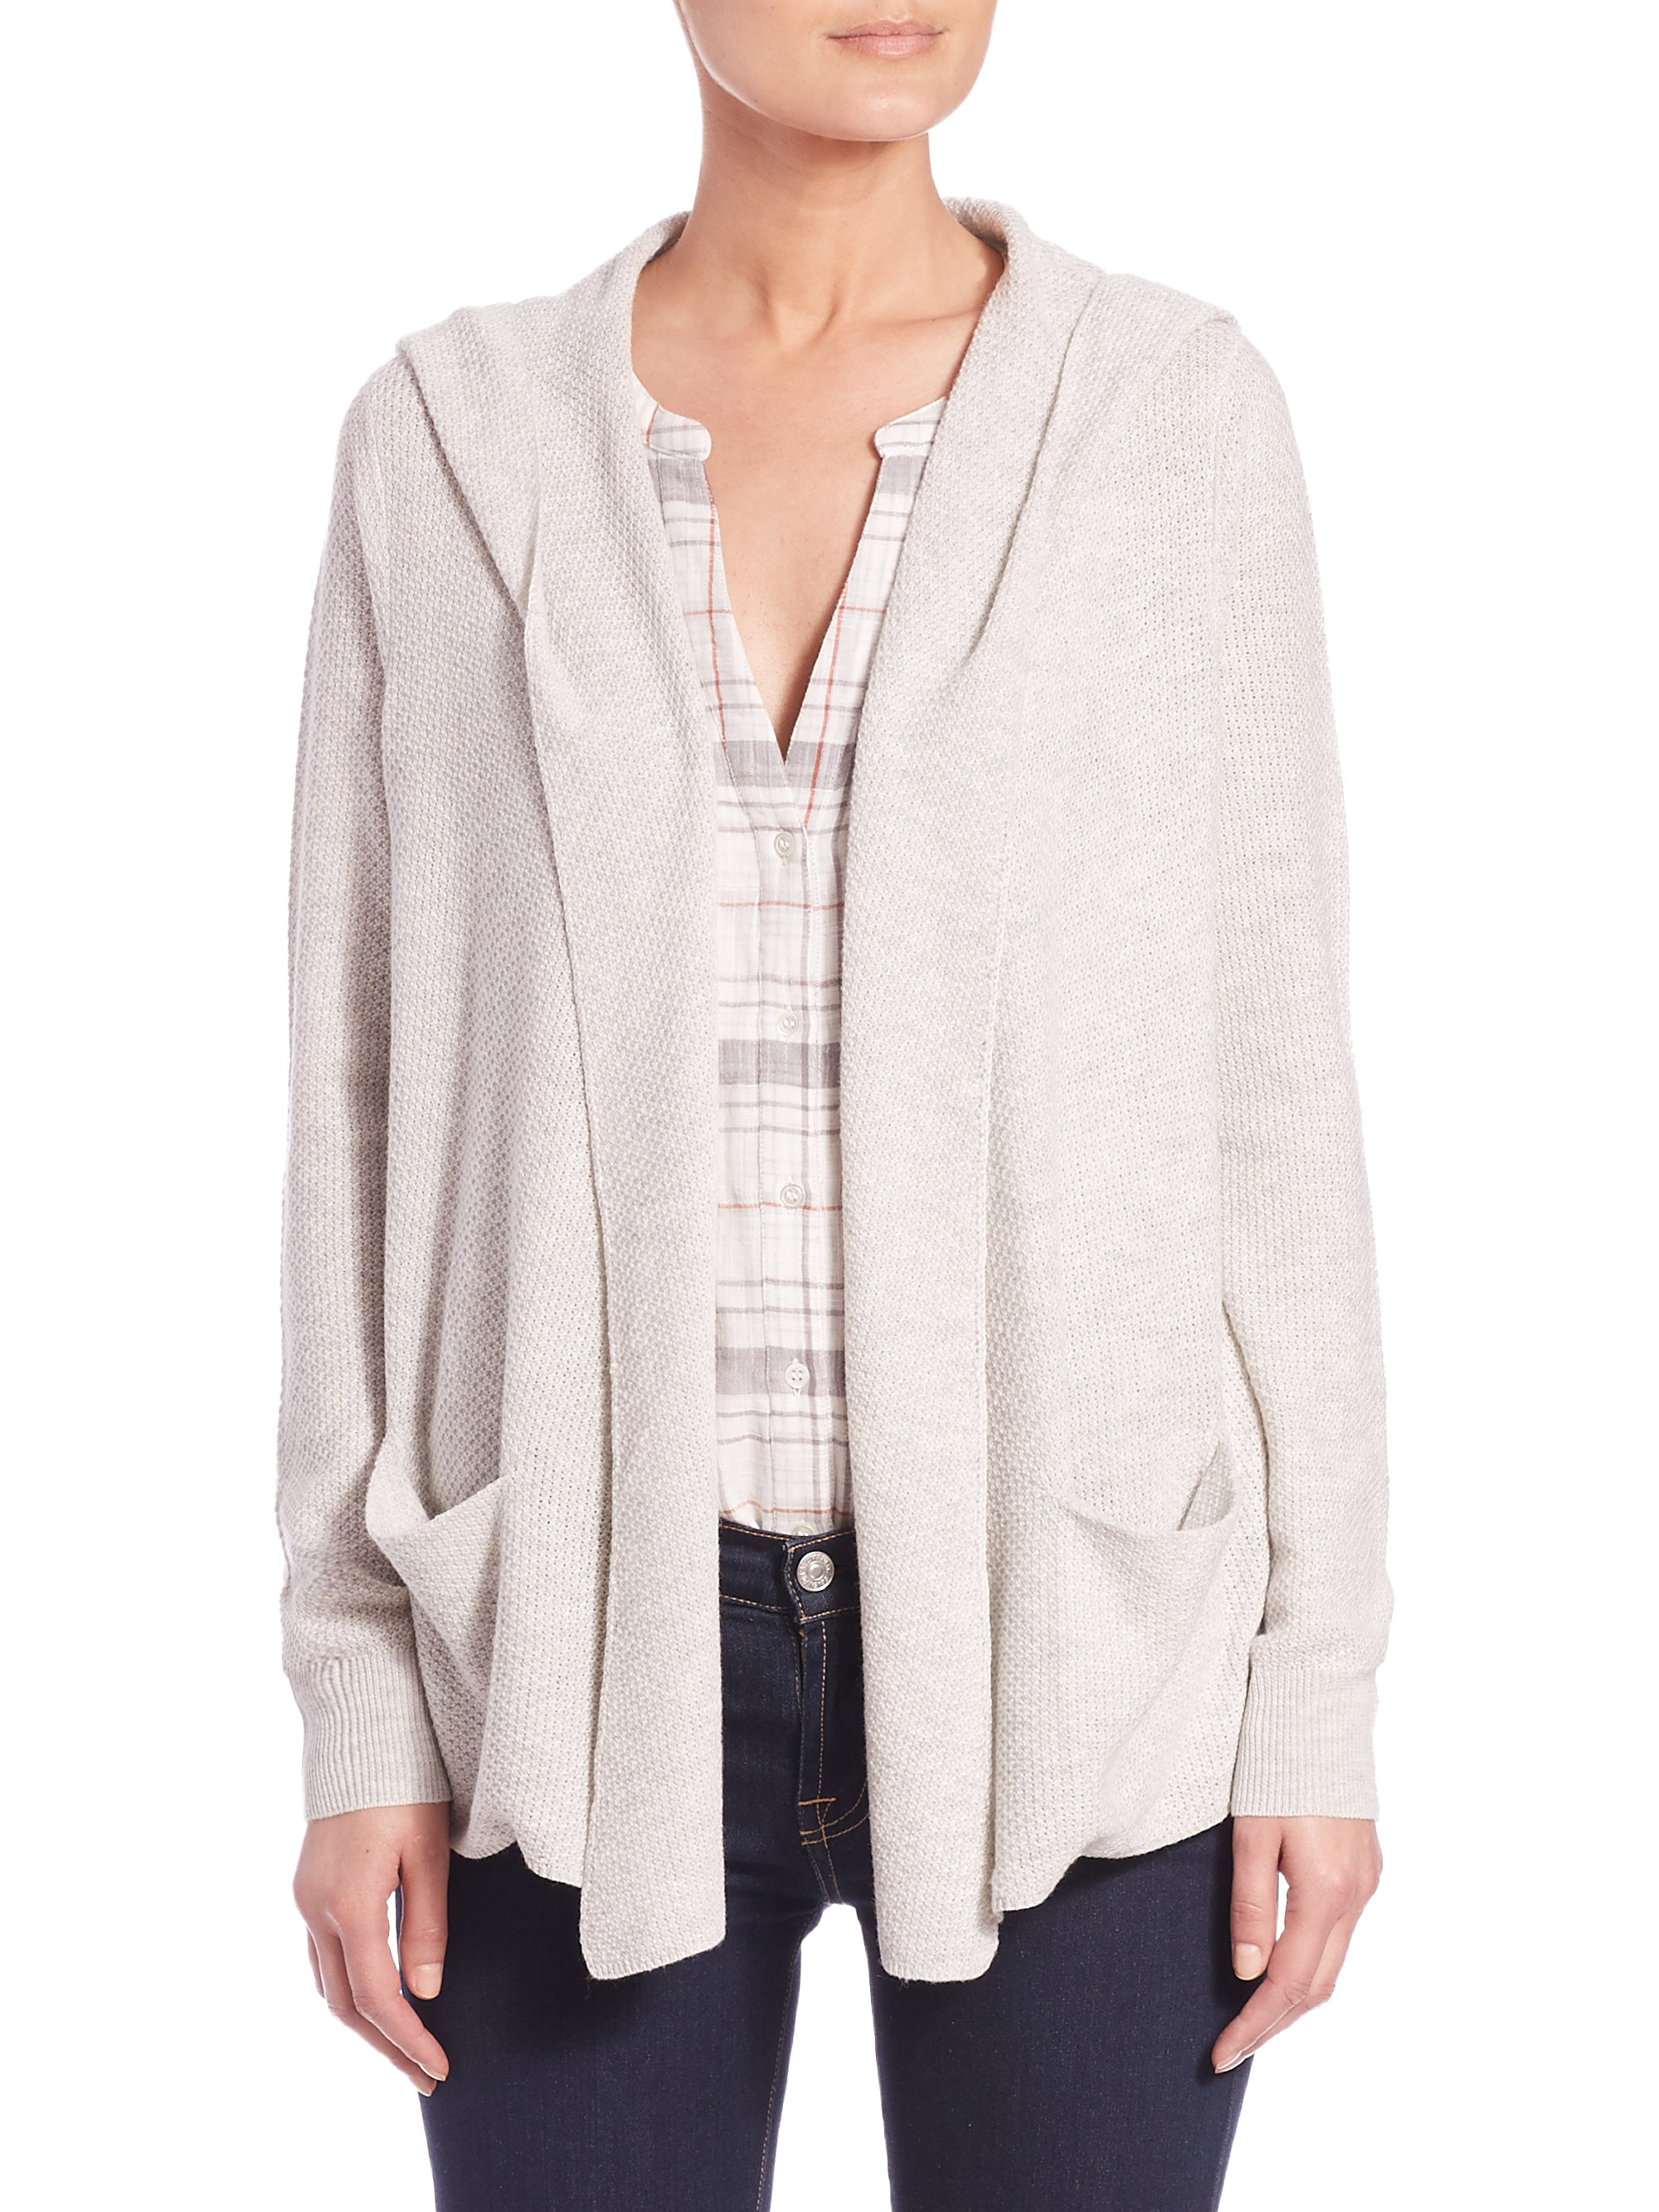 Soft joie Cary Hooded Cardigan in White | Lyst